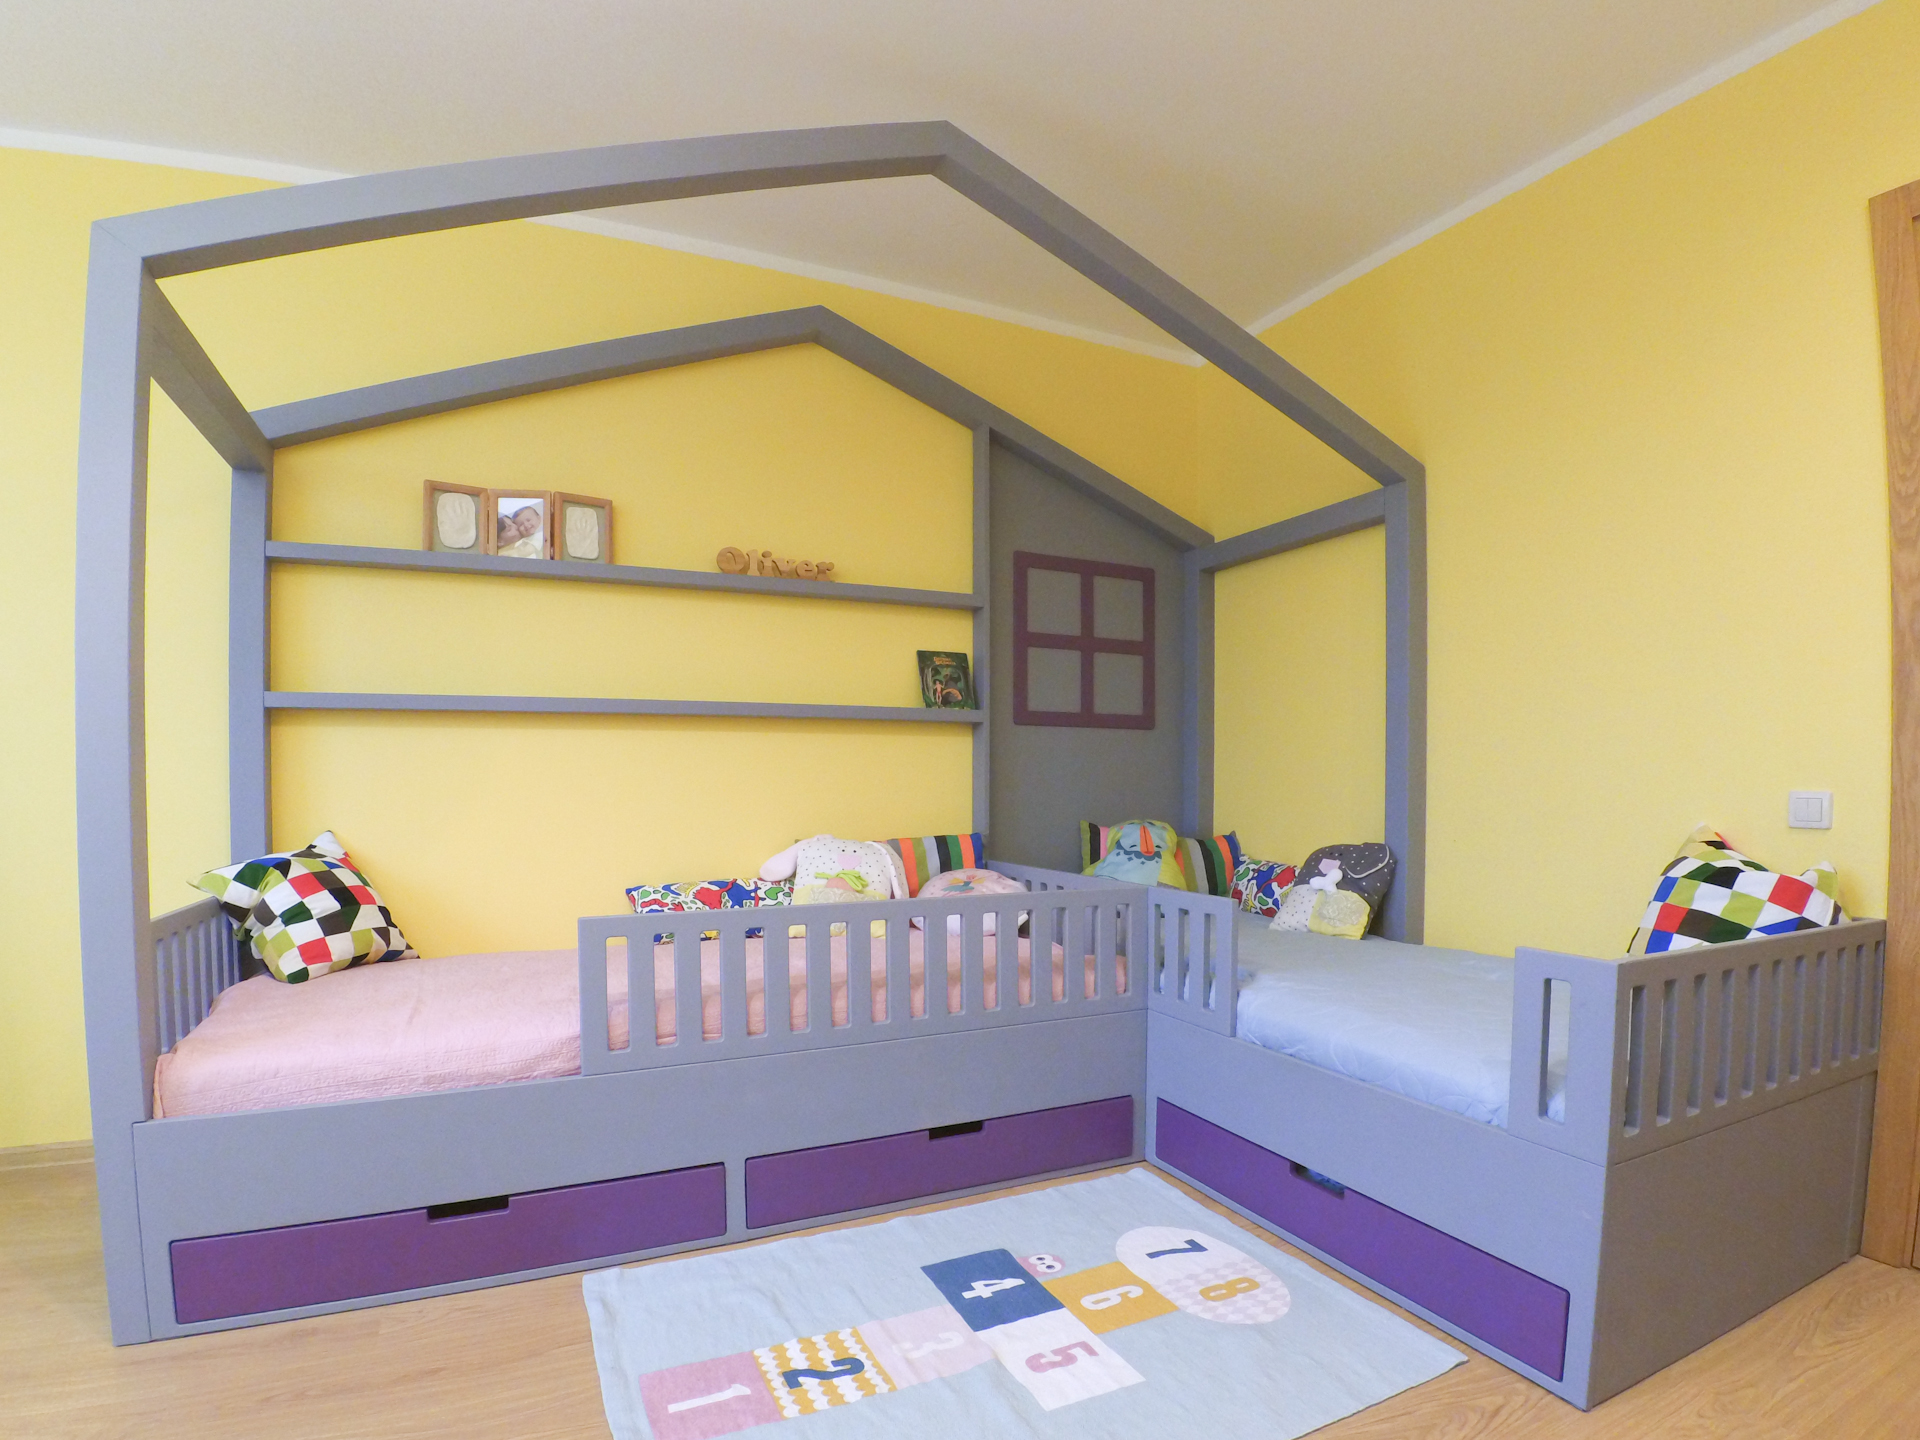 Picture of House Shaped Bed (twin)